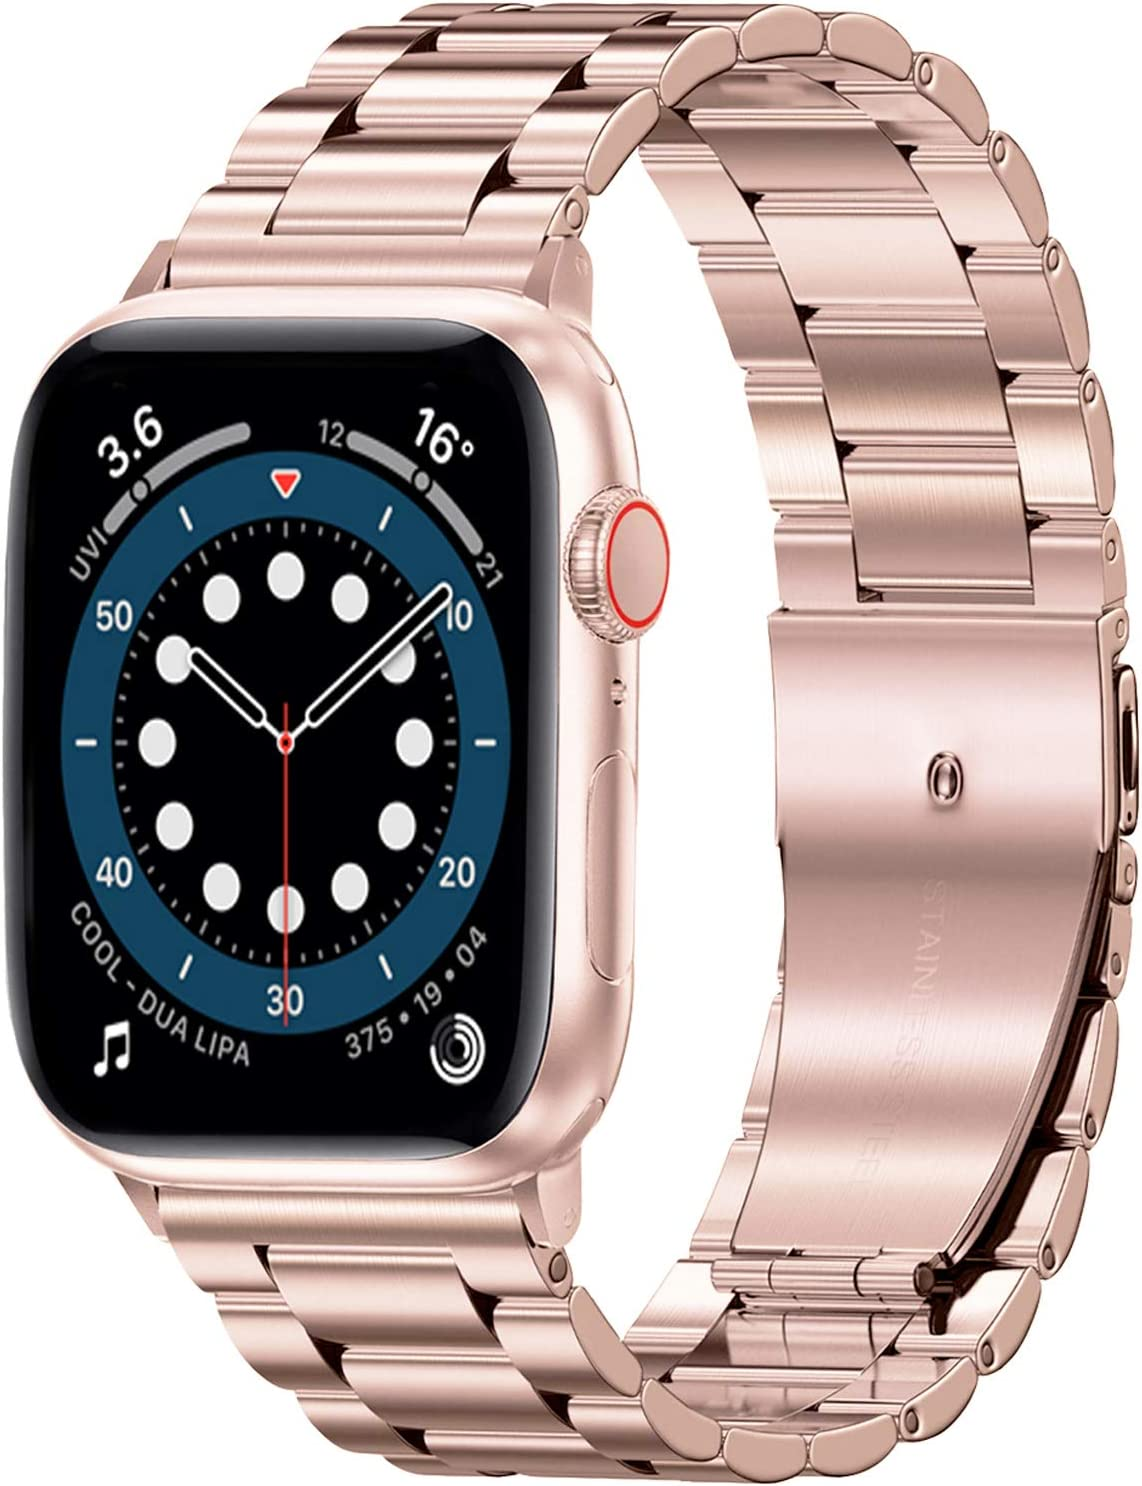 Shangpule Compatible with Apple Watch Band 42mm 44mm 38mm 40mm ,Stainless Steel Metal Wristband Men Women for iWatch SE & Series 6/5/4/3/2/1 (38MM/40MM, Rose Gold)